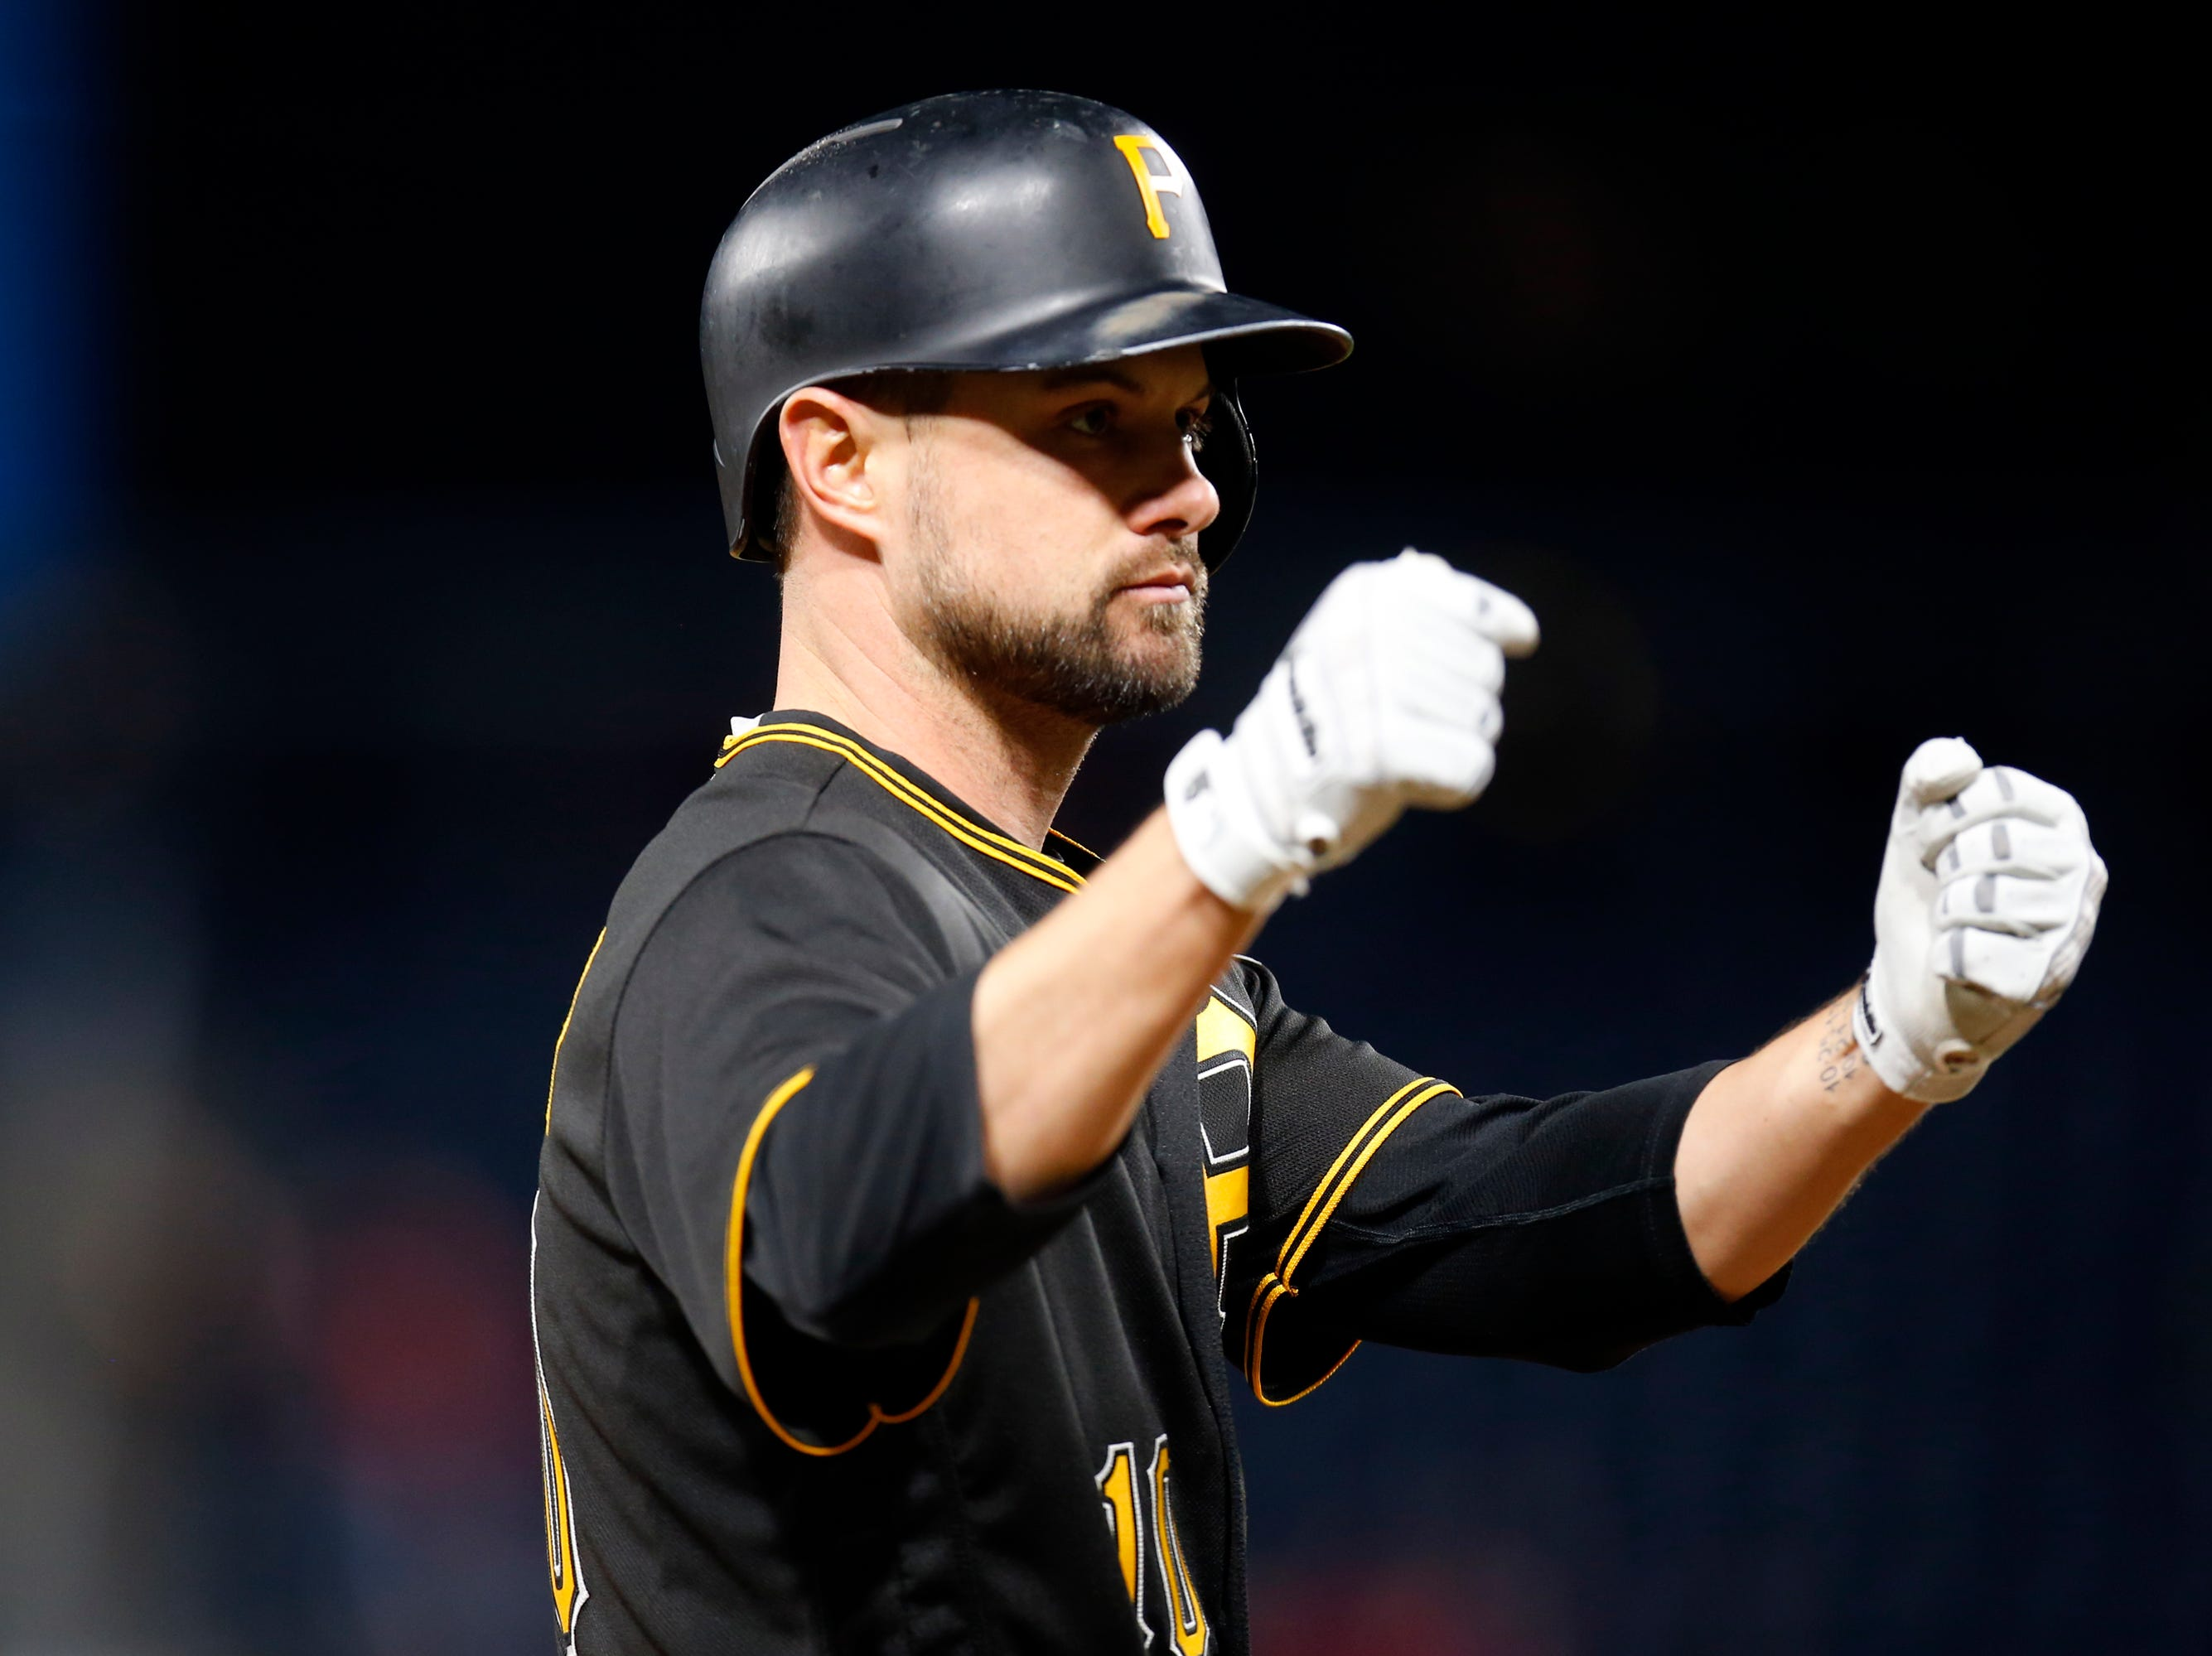 Jordy Mercer of the Pittsburgh Pirates reacts after hitting a two-RBI double in the ninth inning against the St. Louis Cardinals at PNC Park on April 27, 2018 in Pittsburgh, Pennsylvania.